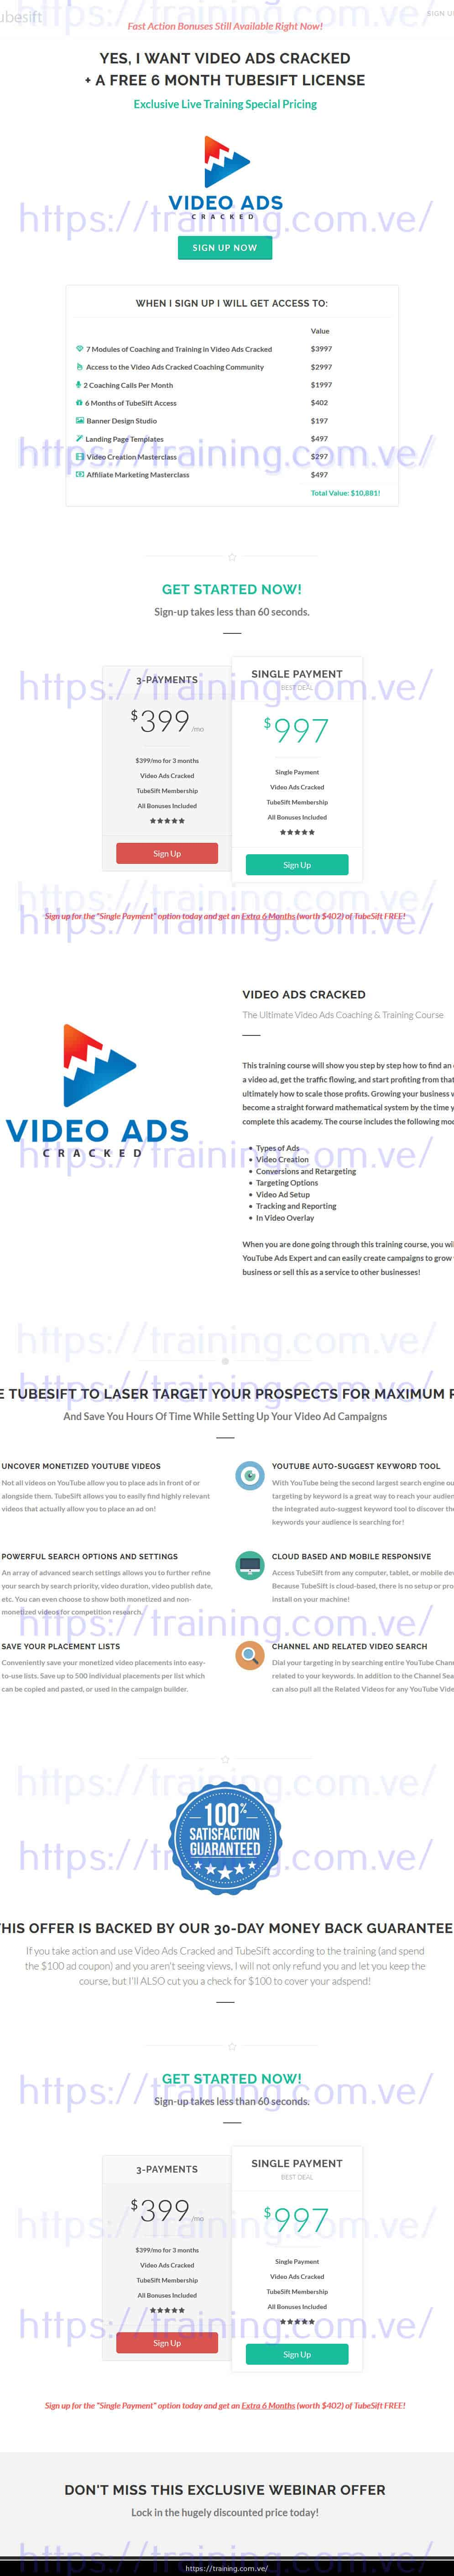 Video Ads Cracked by Justin Sardi Sales page